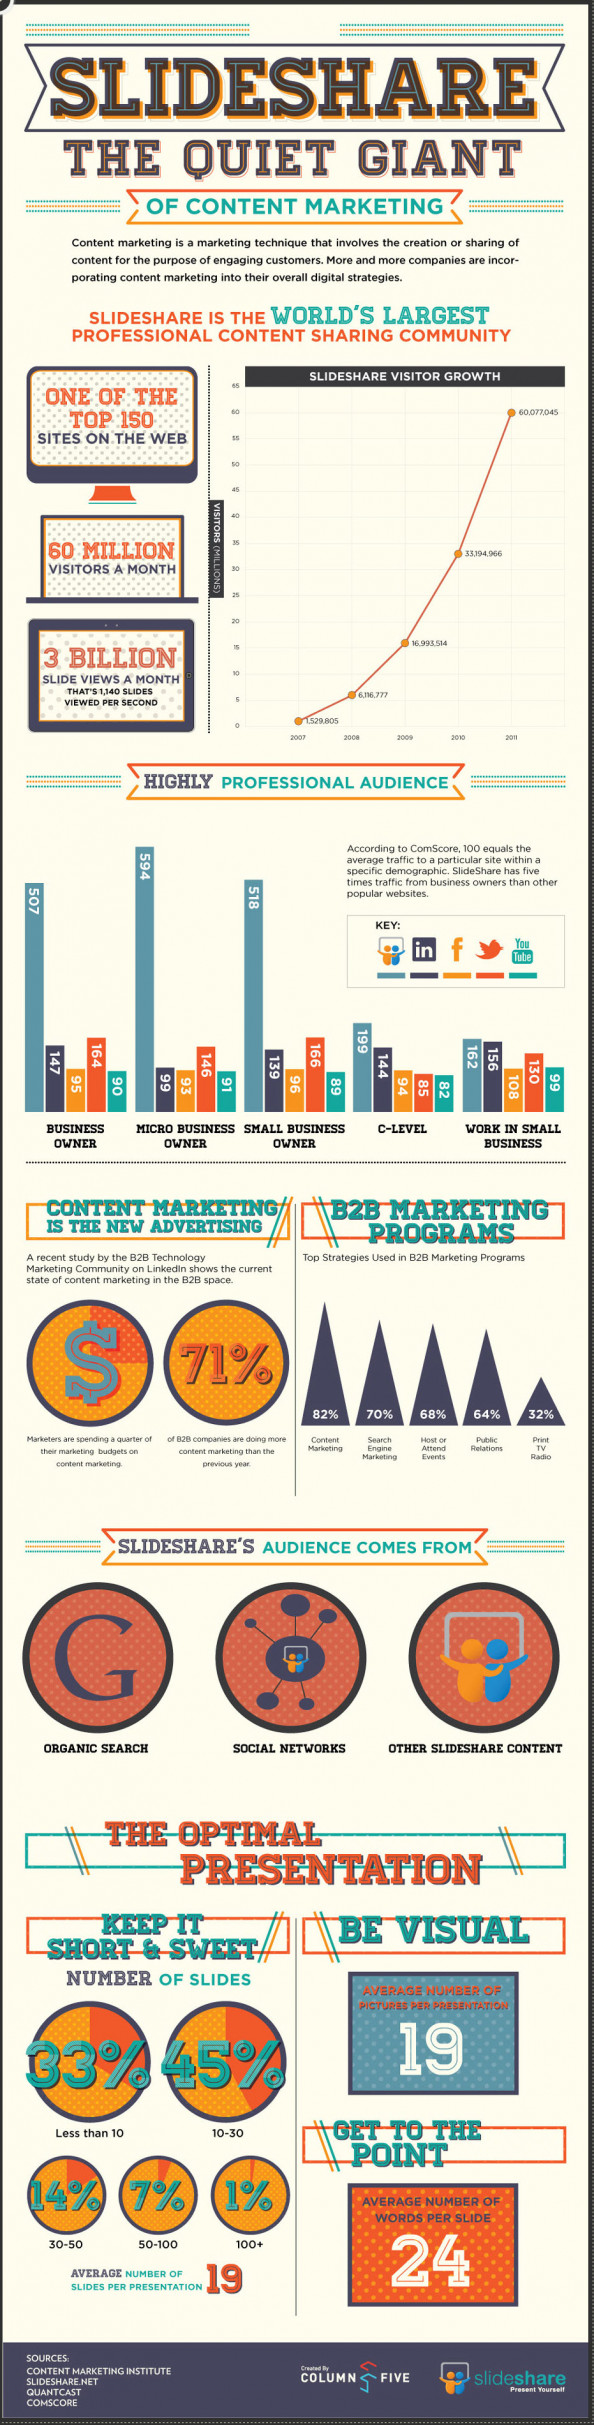 Slideshare: The Quiet Giant of Content Marketing Infographic